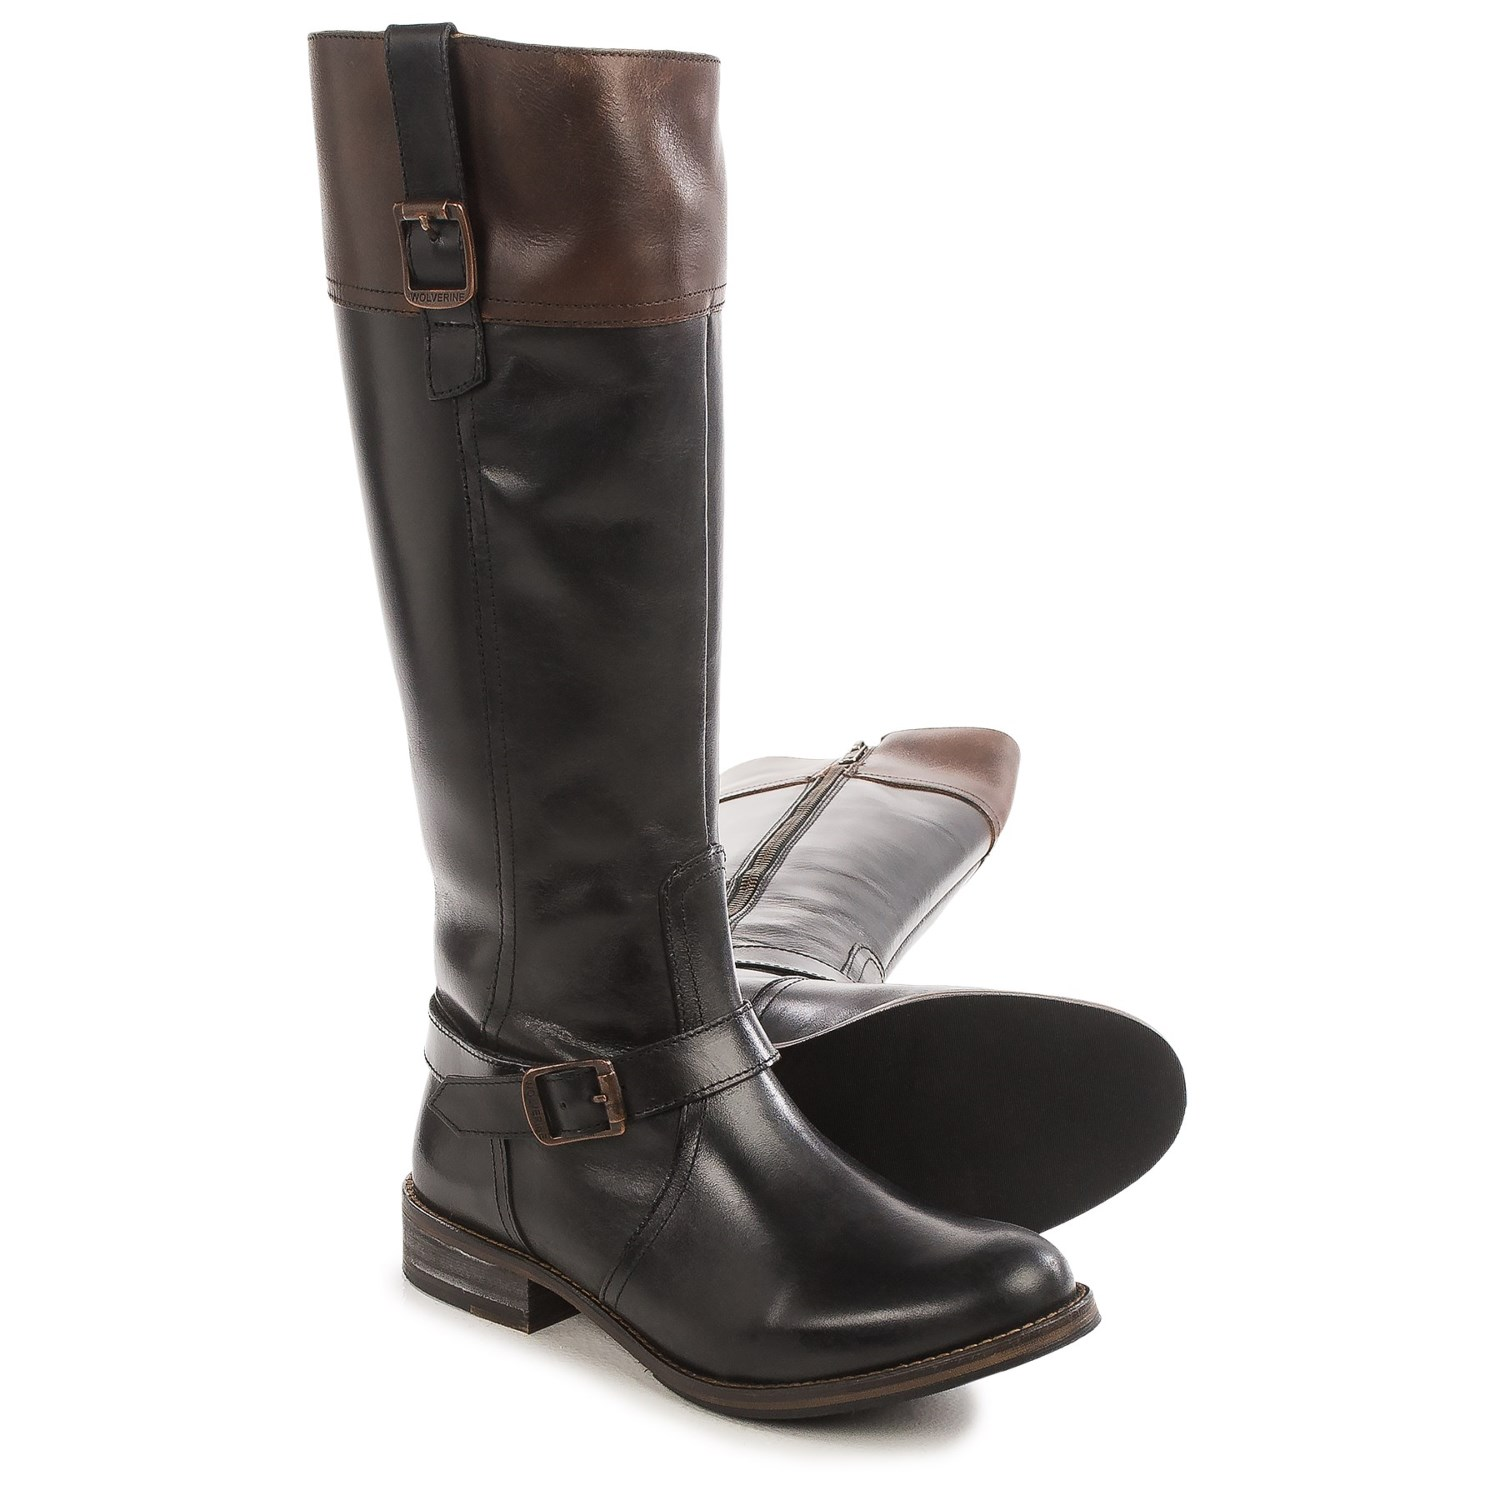 Wolverine Shannon Riding Boots (For Women) - Save 60%